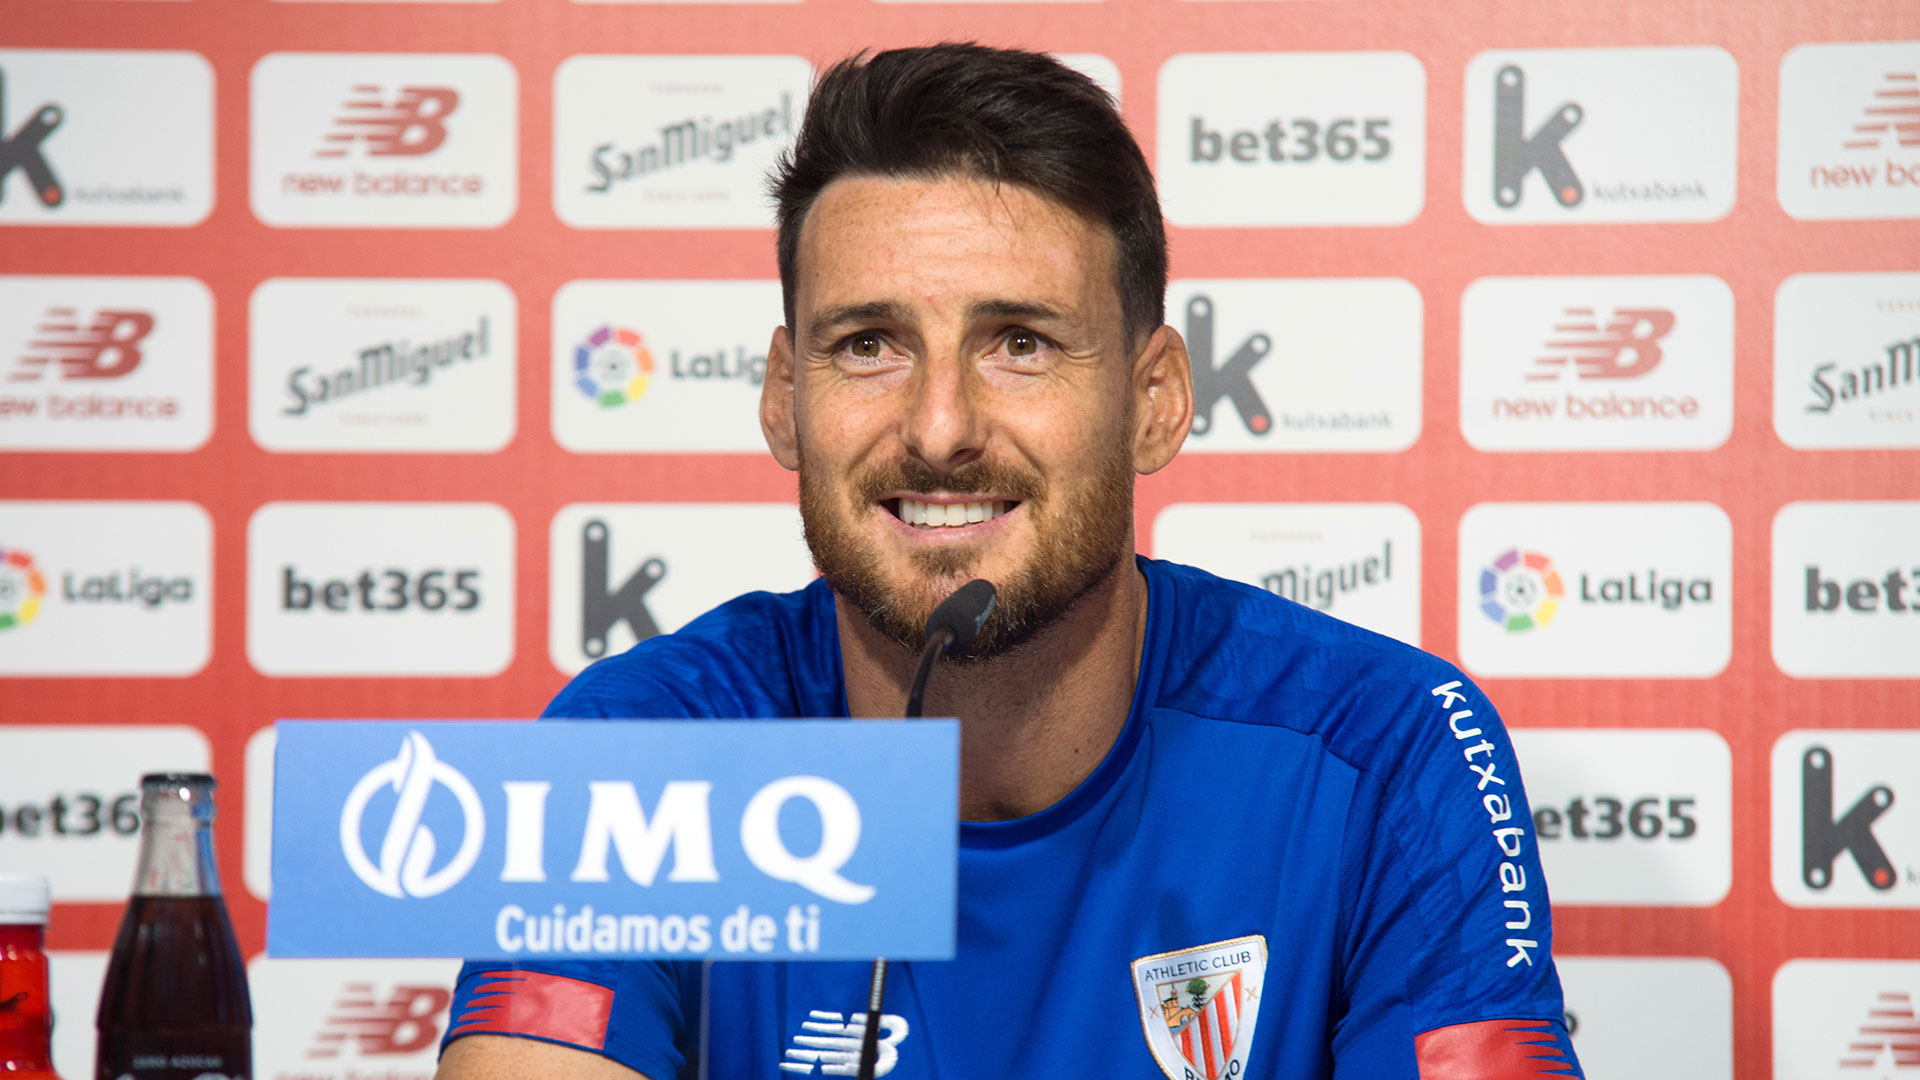 Aduriz will hang up his boots at the end of the season